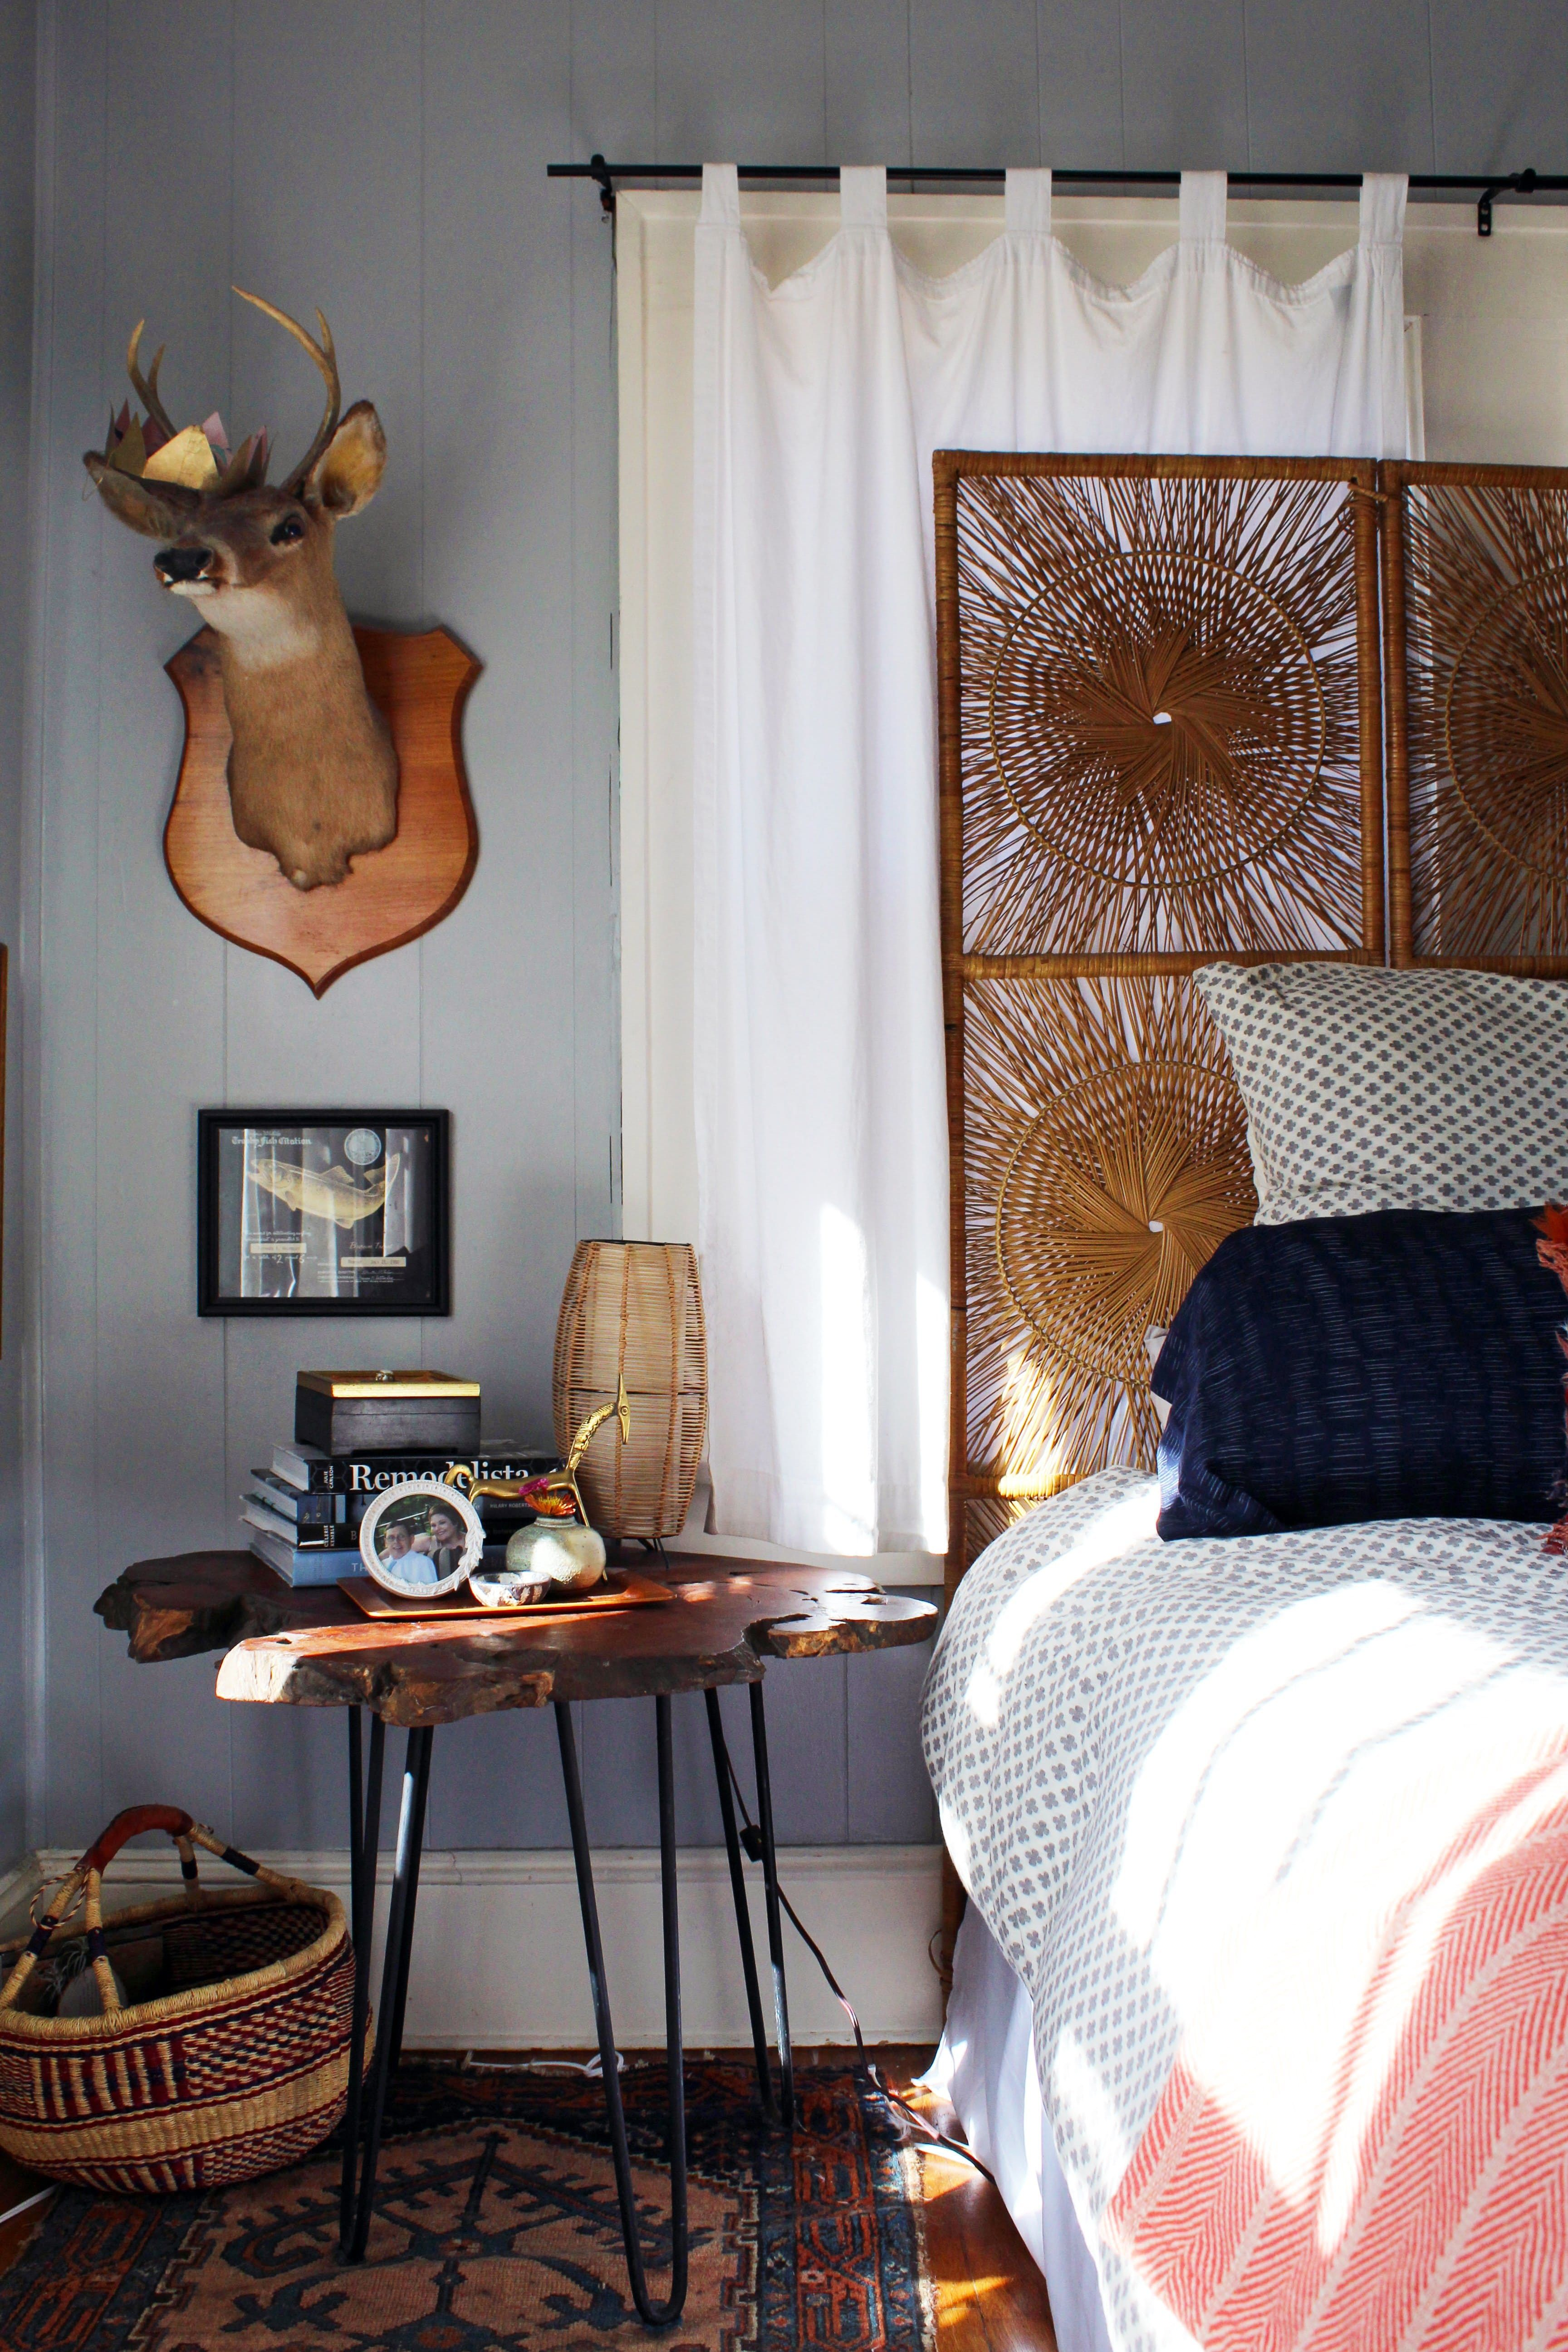 Dress Your Bed On A Dime Thrifty Shopping Design Tips Bedroom - Design on a dime ideas bedroom